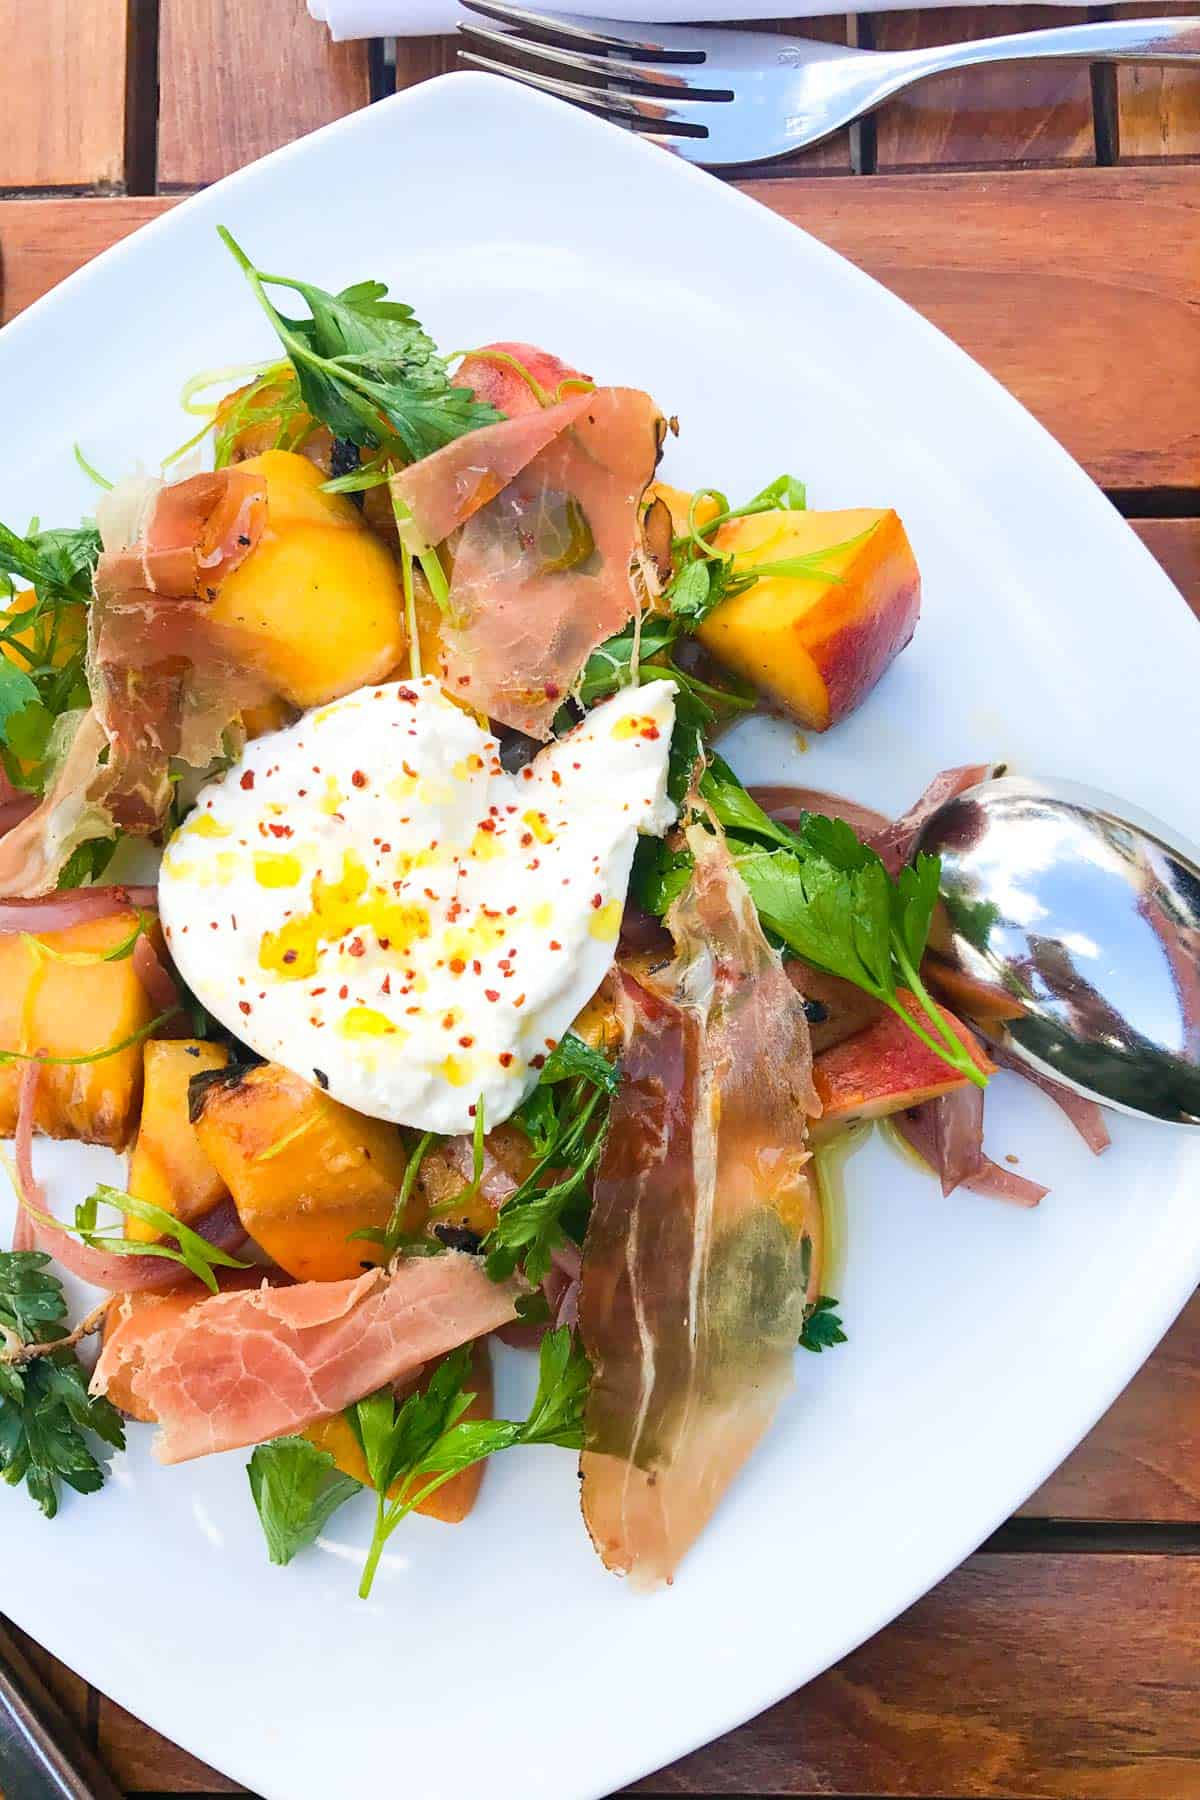 Peach and Burrata Salad from Saffron Mediterranean Kitchen in Walla Walla, Washington